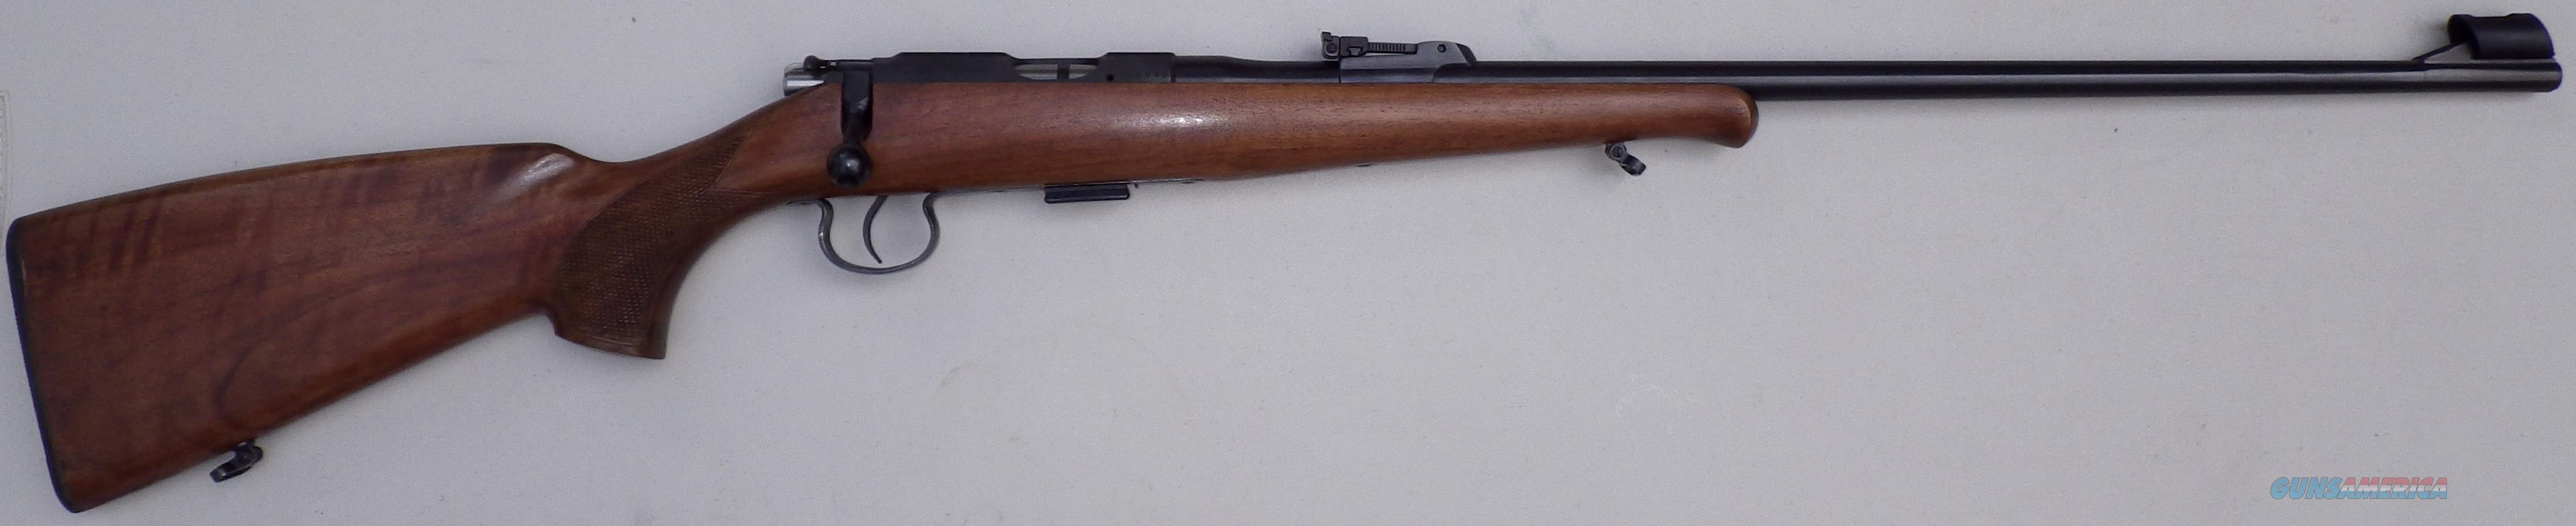 BRNO ZKM 452 2-E ( Model 2) .22 LR, imported 1990 by Bauska, new in box with papers  Guns > Rifles > BRNO Rifles